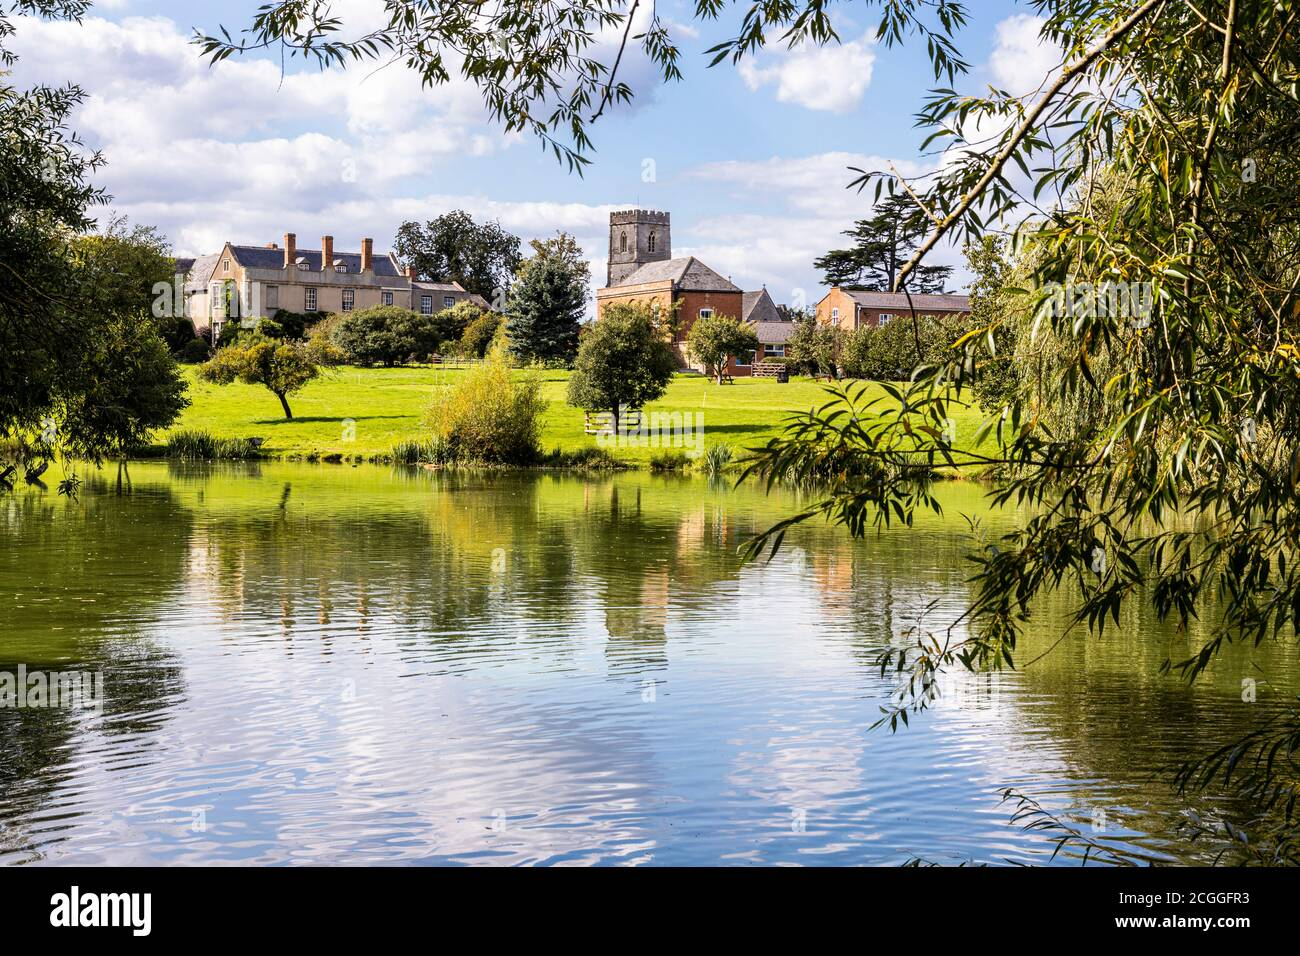 Maisemore Court and St Giles church viewed across the lake in the Severn Vale village of Maisemore, Gloucestershire UK Stock Photo